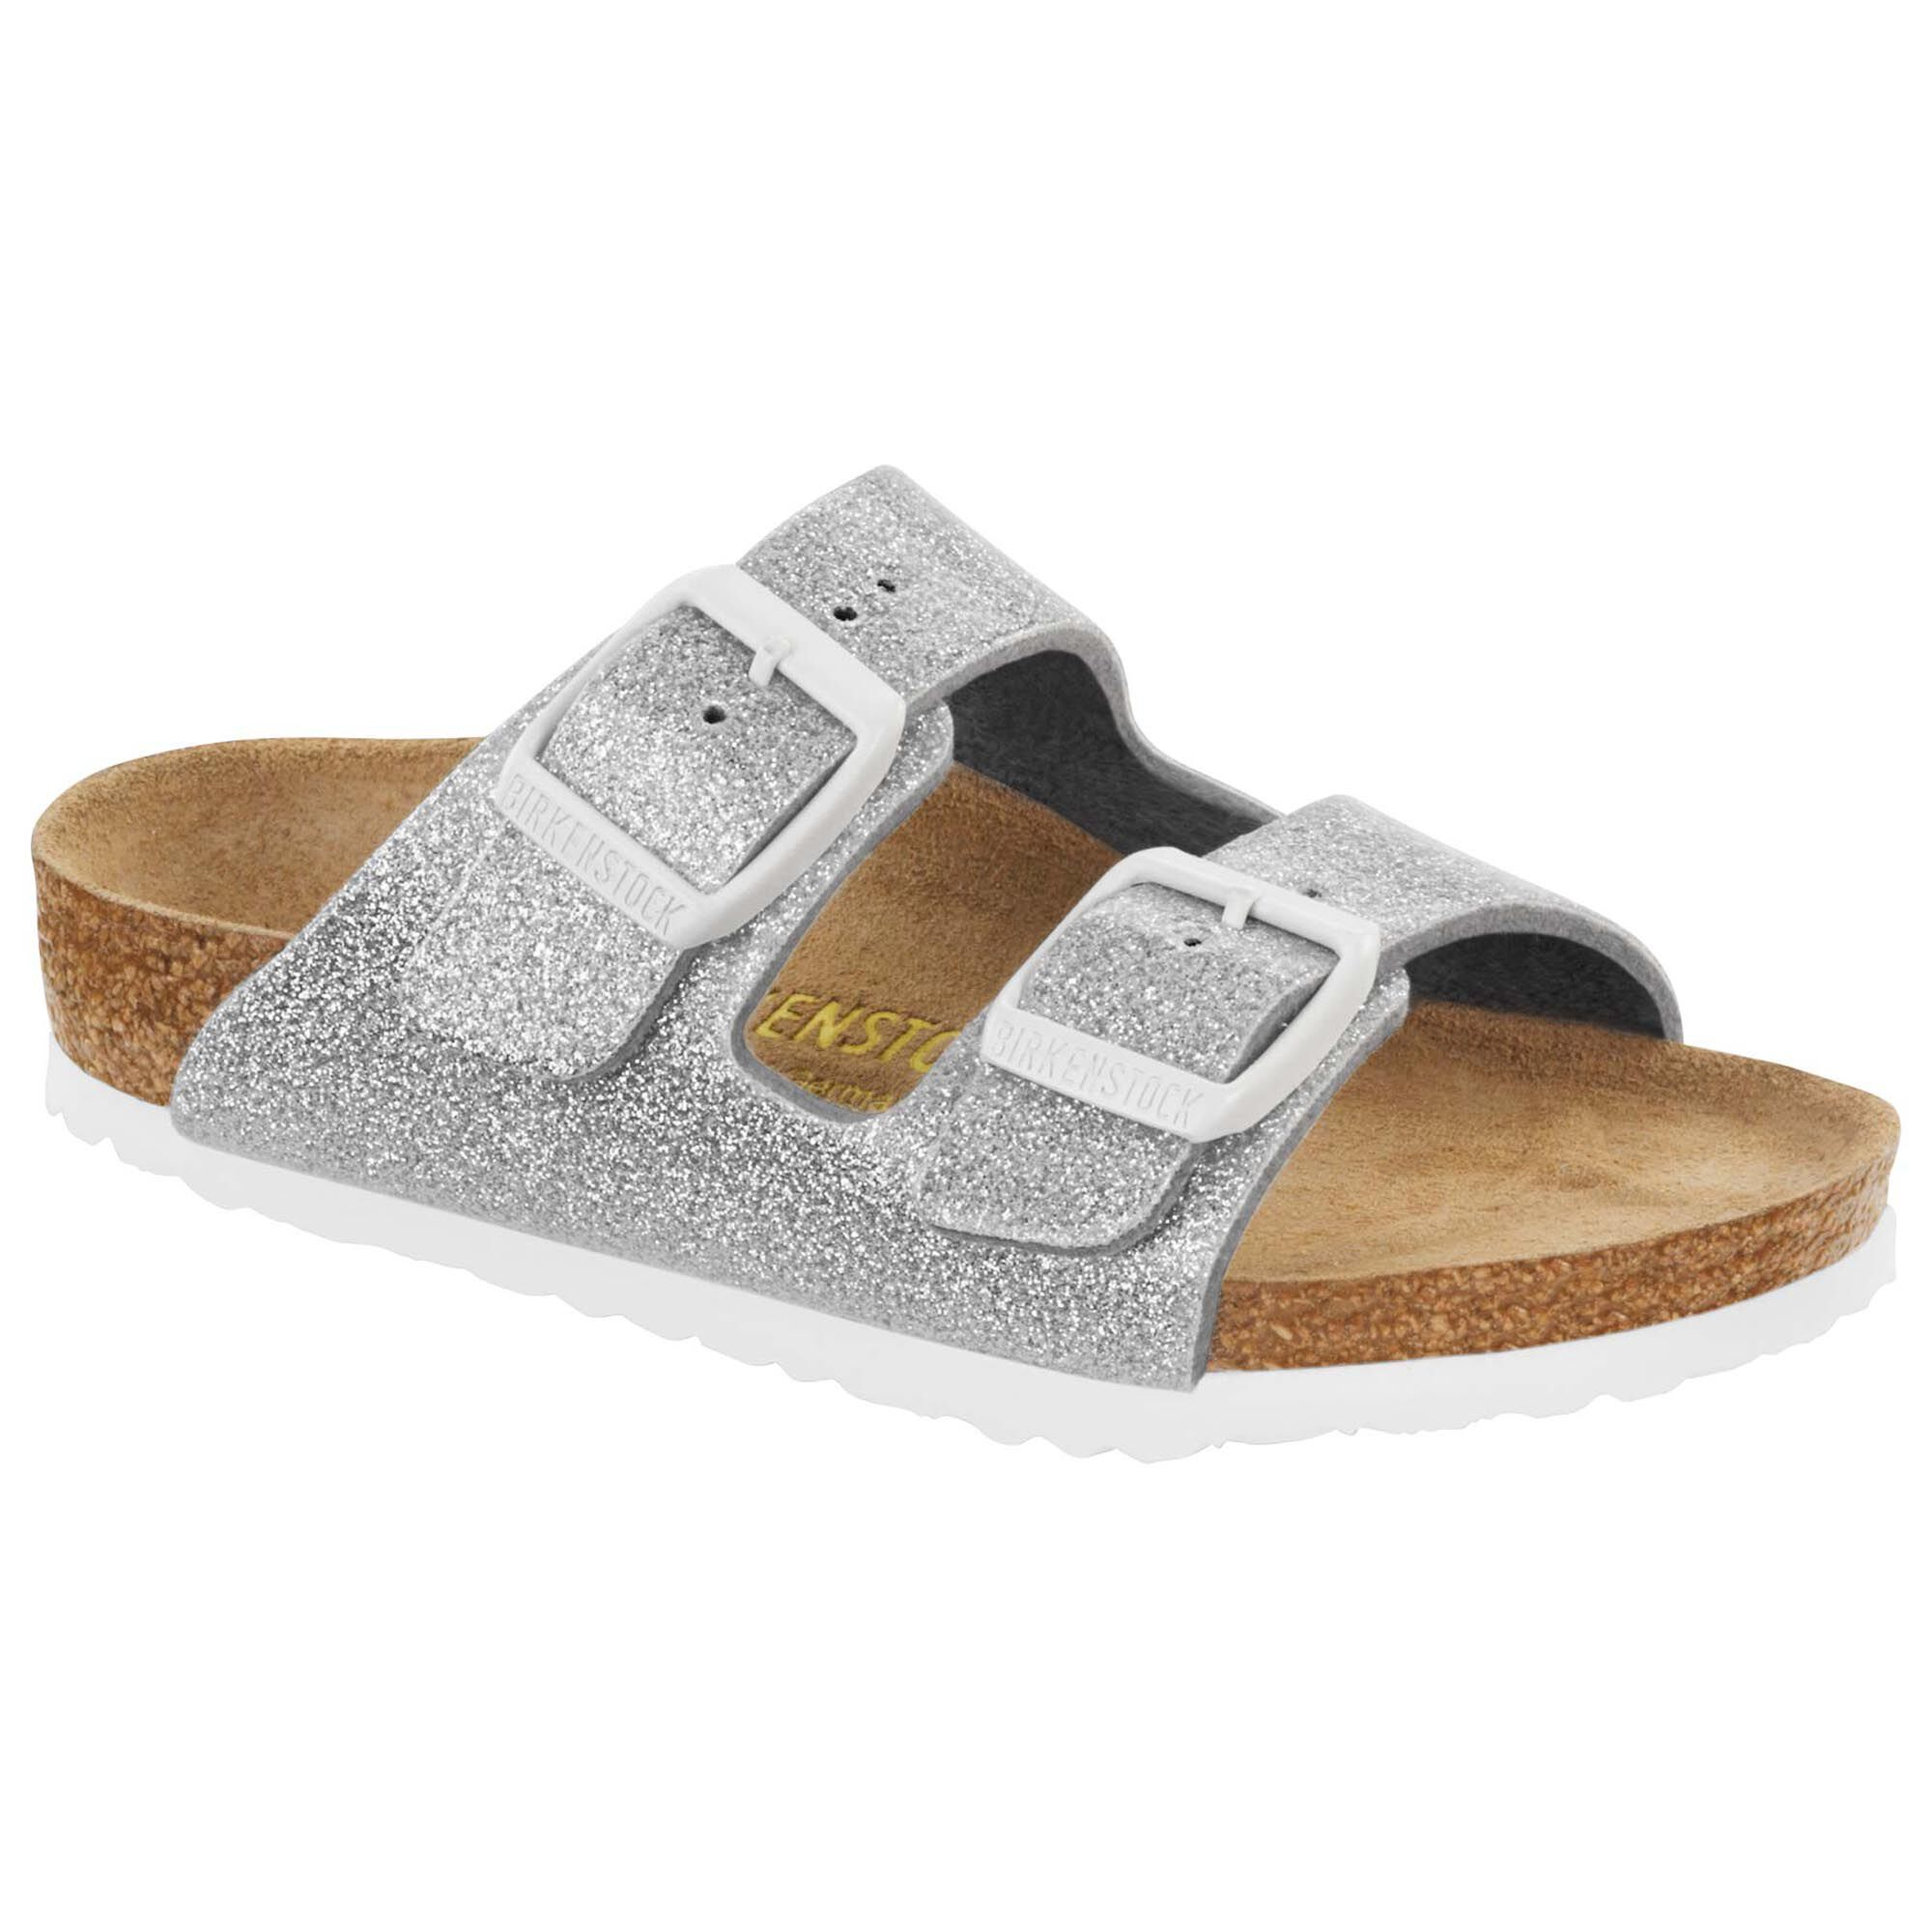 38b0226ef990 Arizona Birko Flor Magic Galaxy Silver Birkenstock